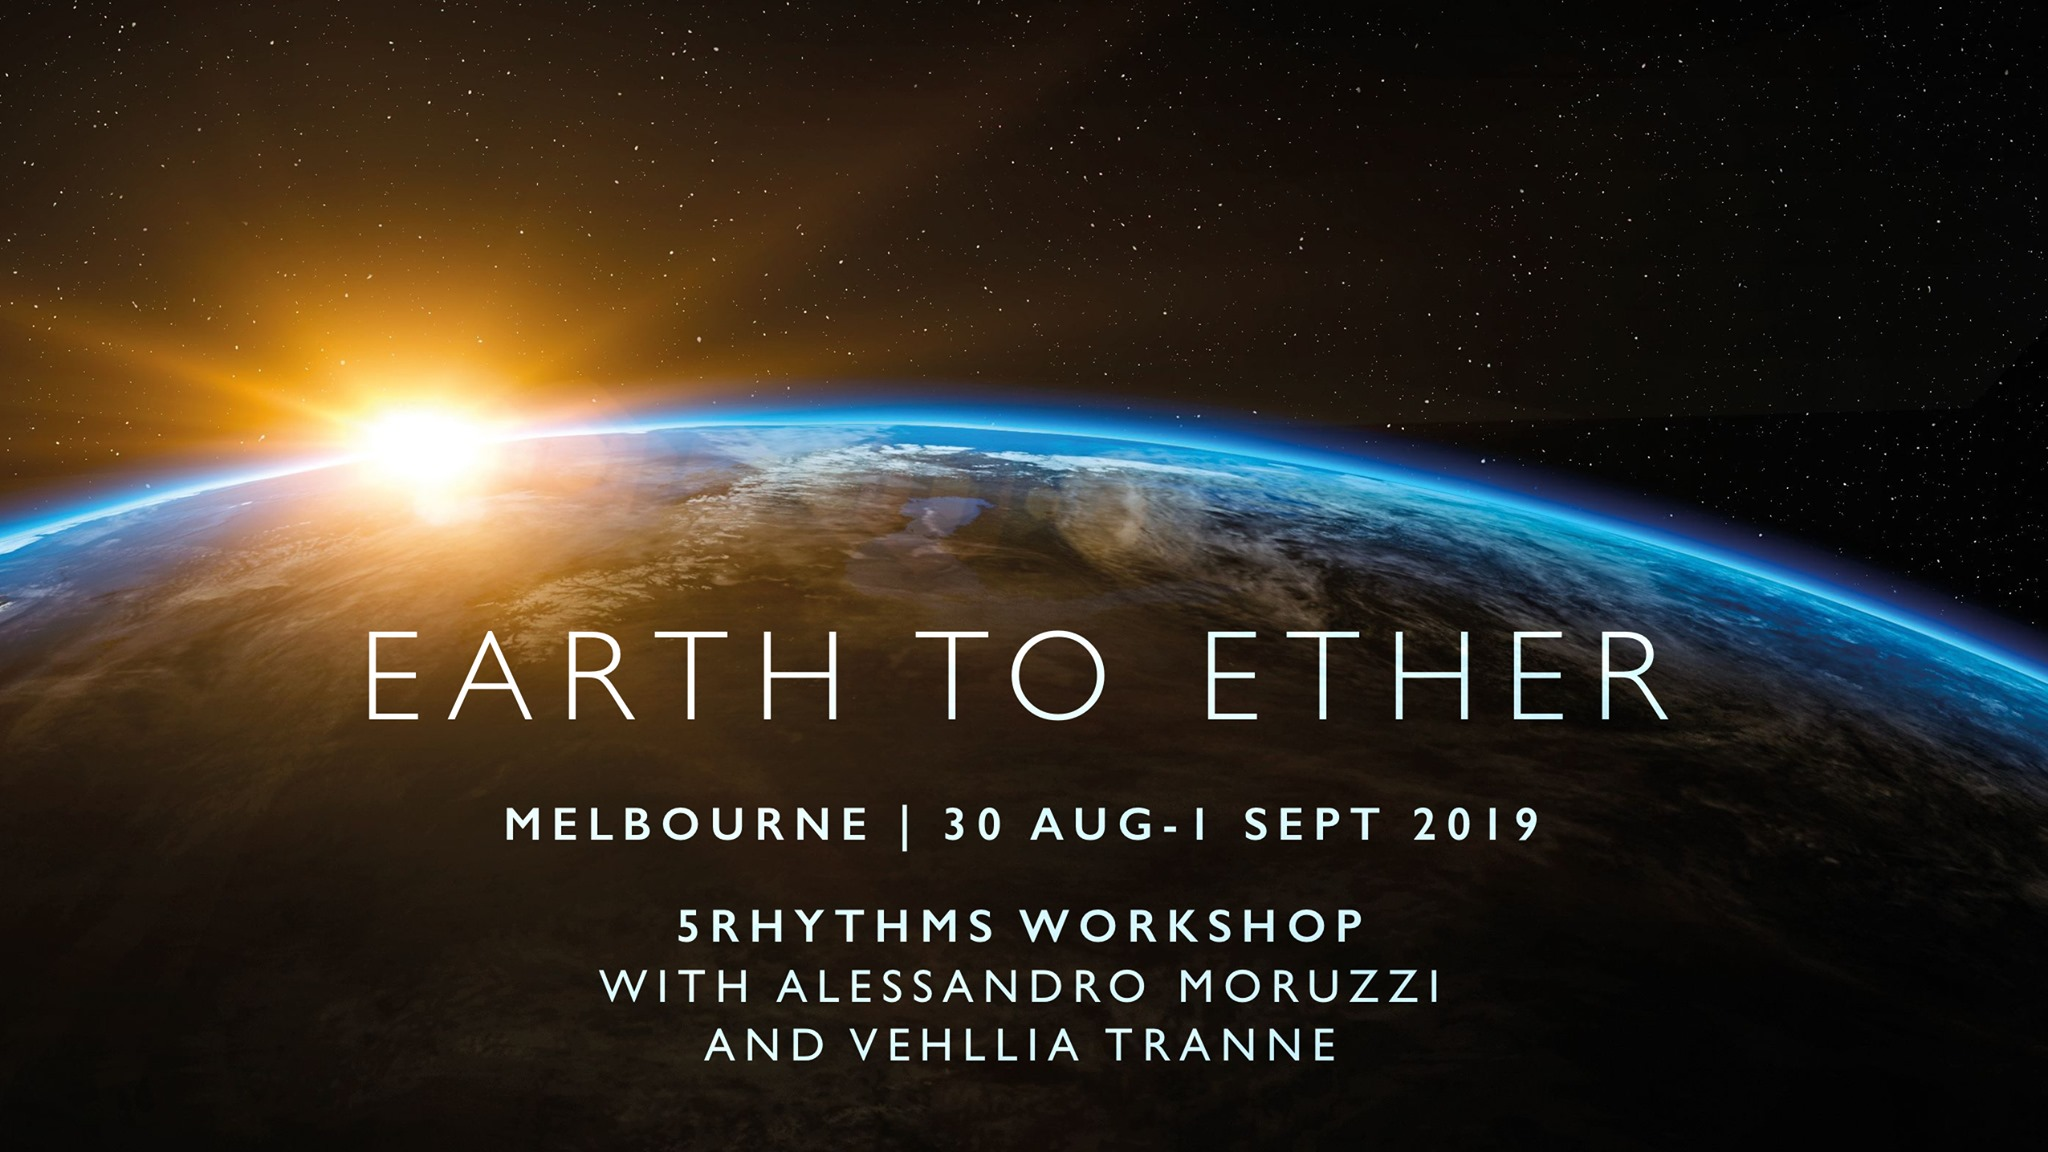 earth to ether melbourne aug 2019.jpg